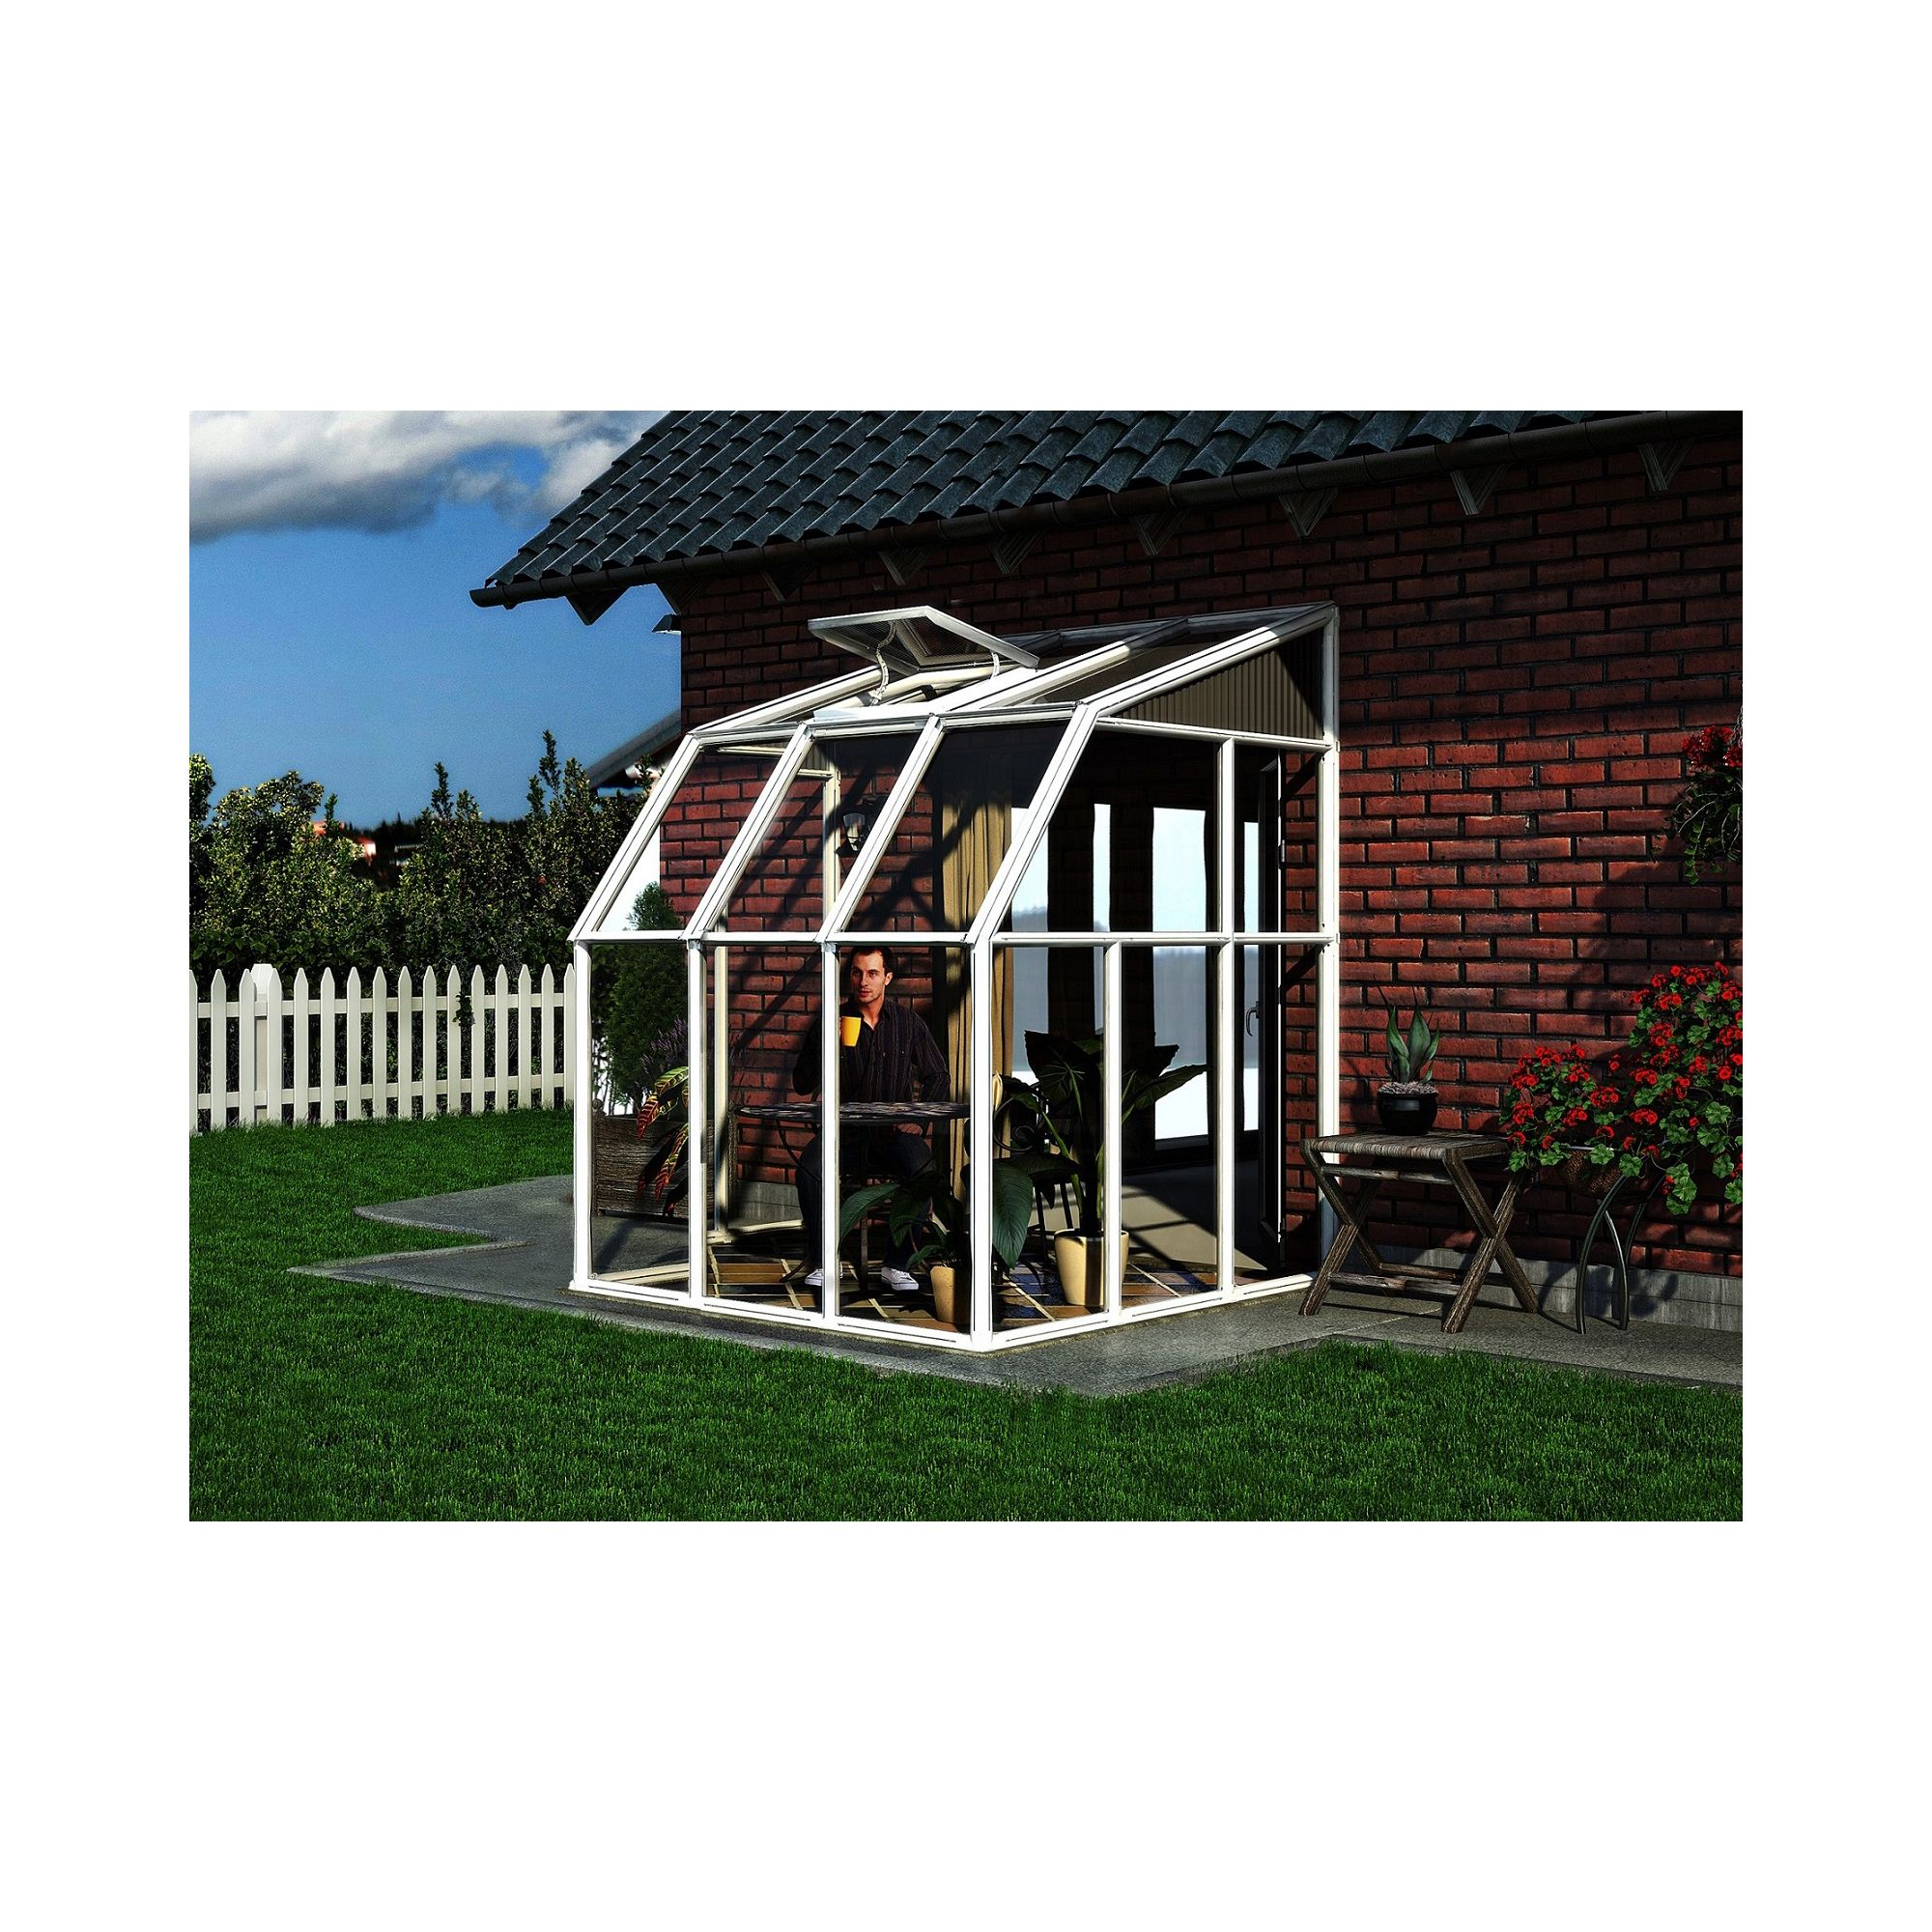 SUN ROOM 6X6 at Tesco Direct